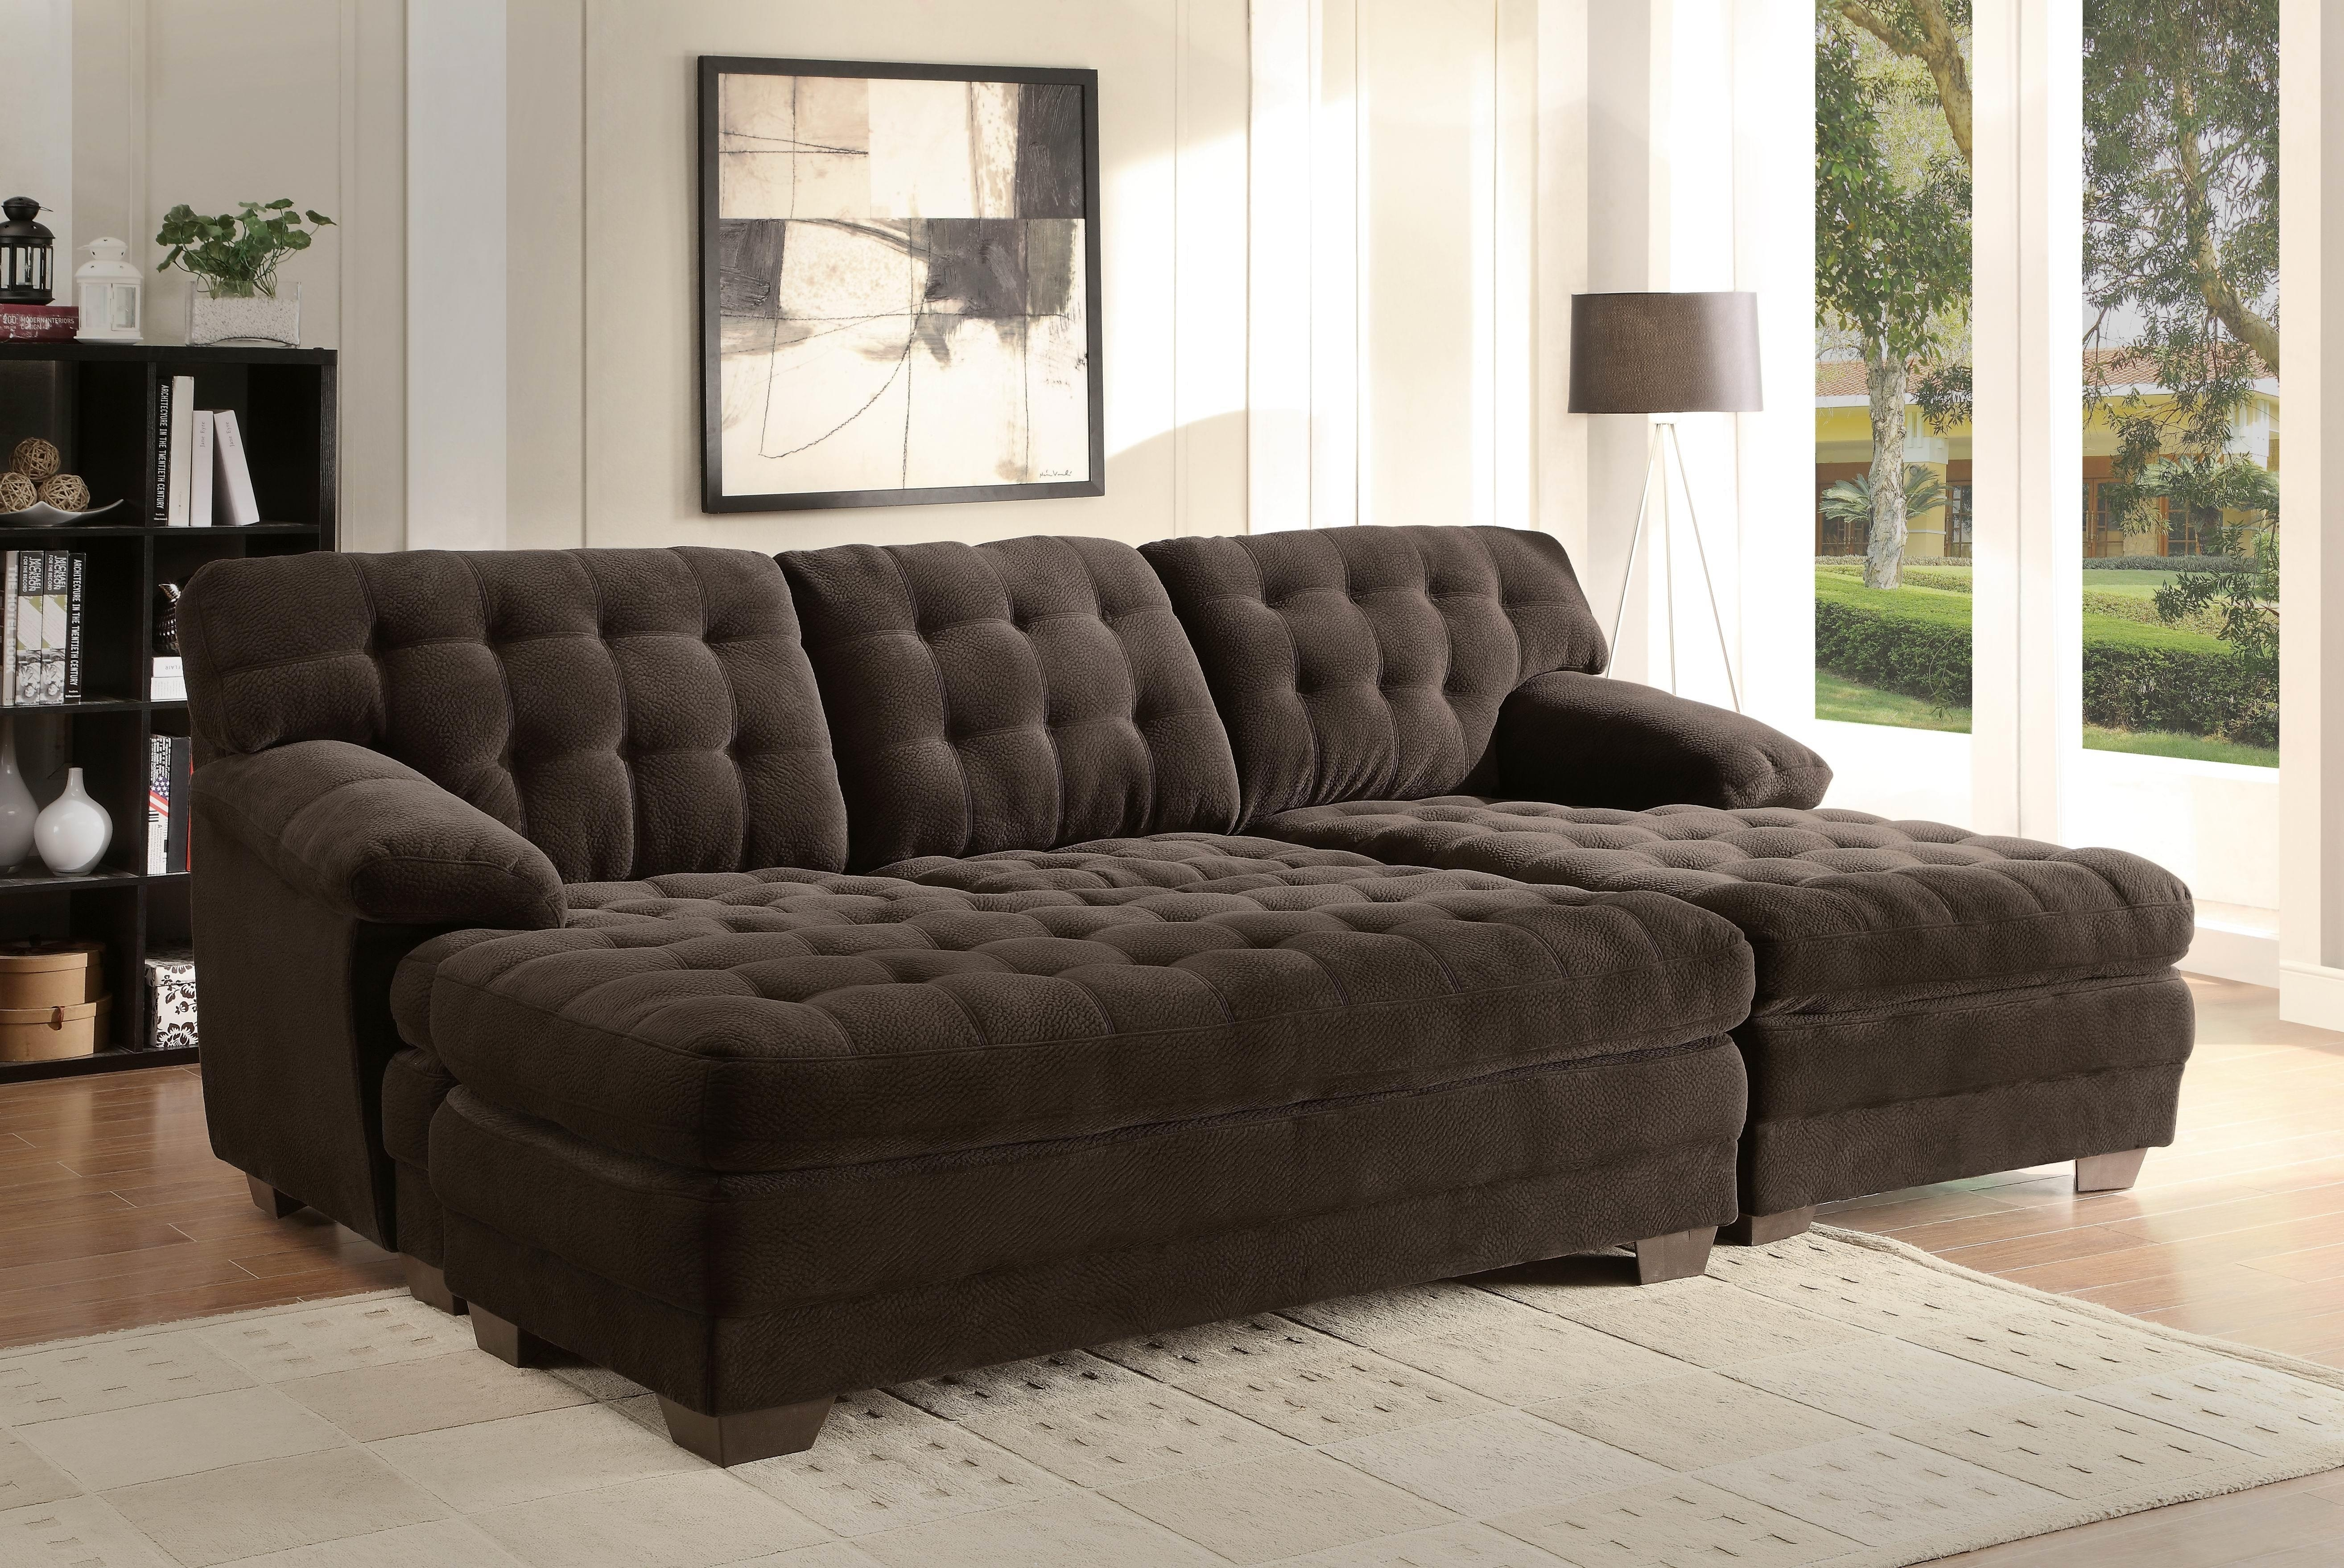 Large Sectional Sofa With Ottoman | Aifaresidency Throughout Sofas With Large Ottoman (Image 5 of 10)